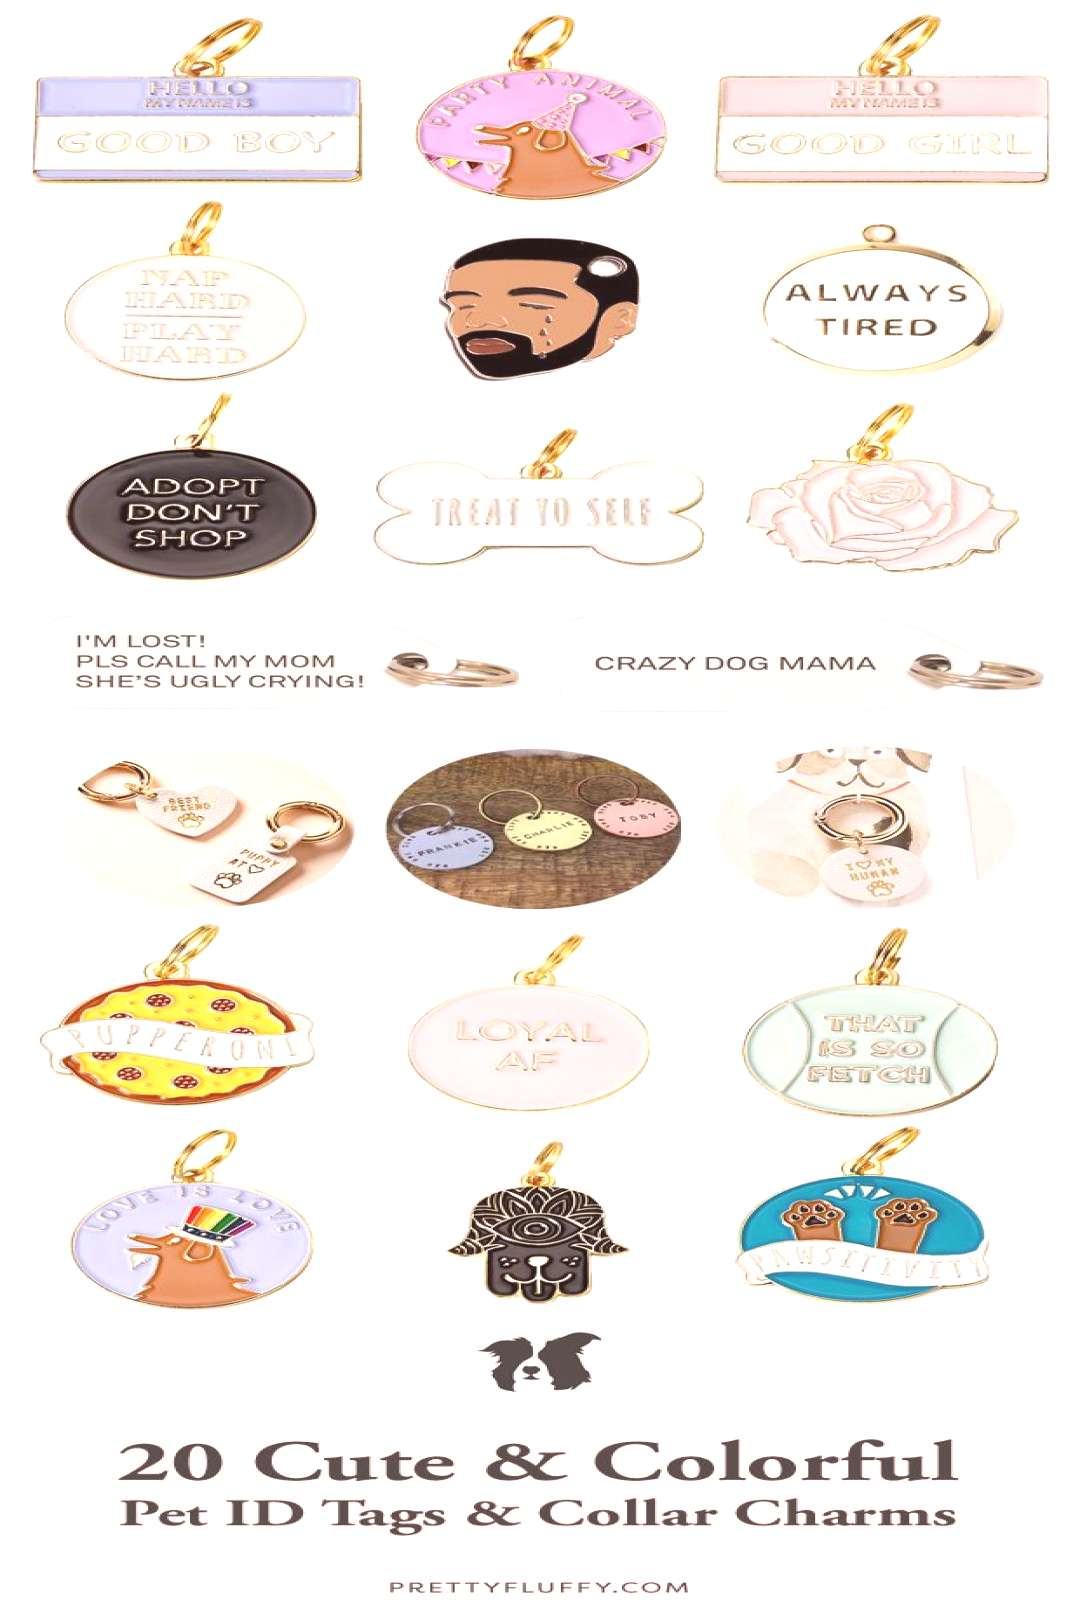 20 Cute & Colorful Pet ID Tags & Dog Collar Charms,  20 Cute & Colorful Pet ID Tags & Dog Collar Ch